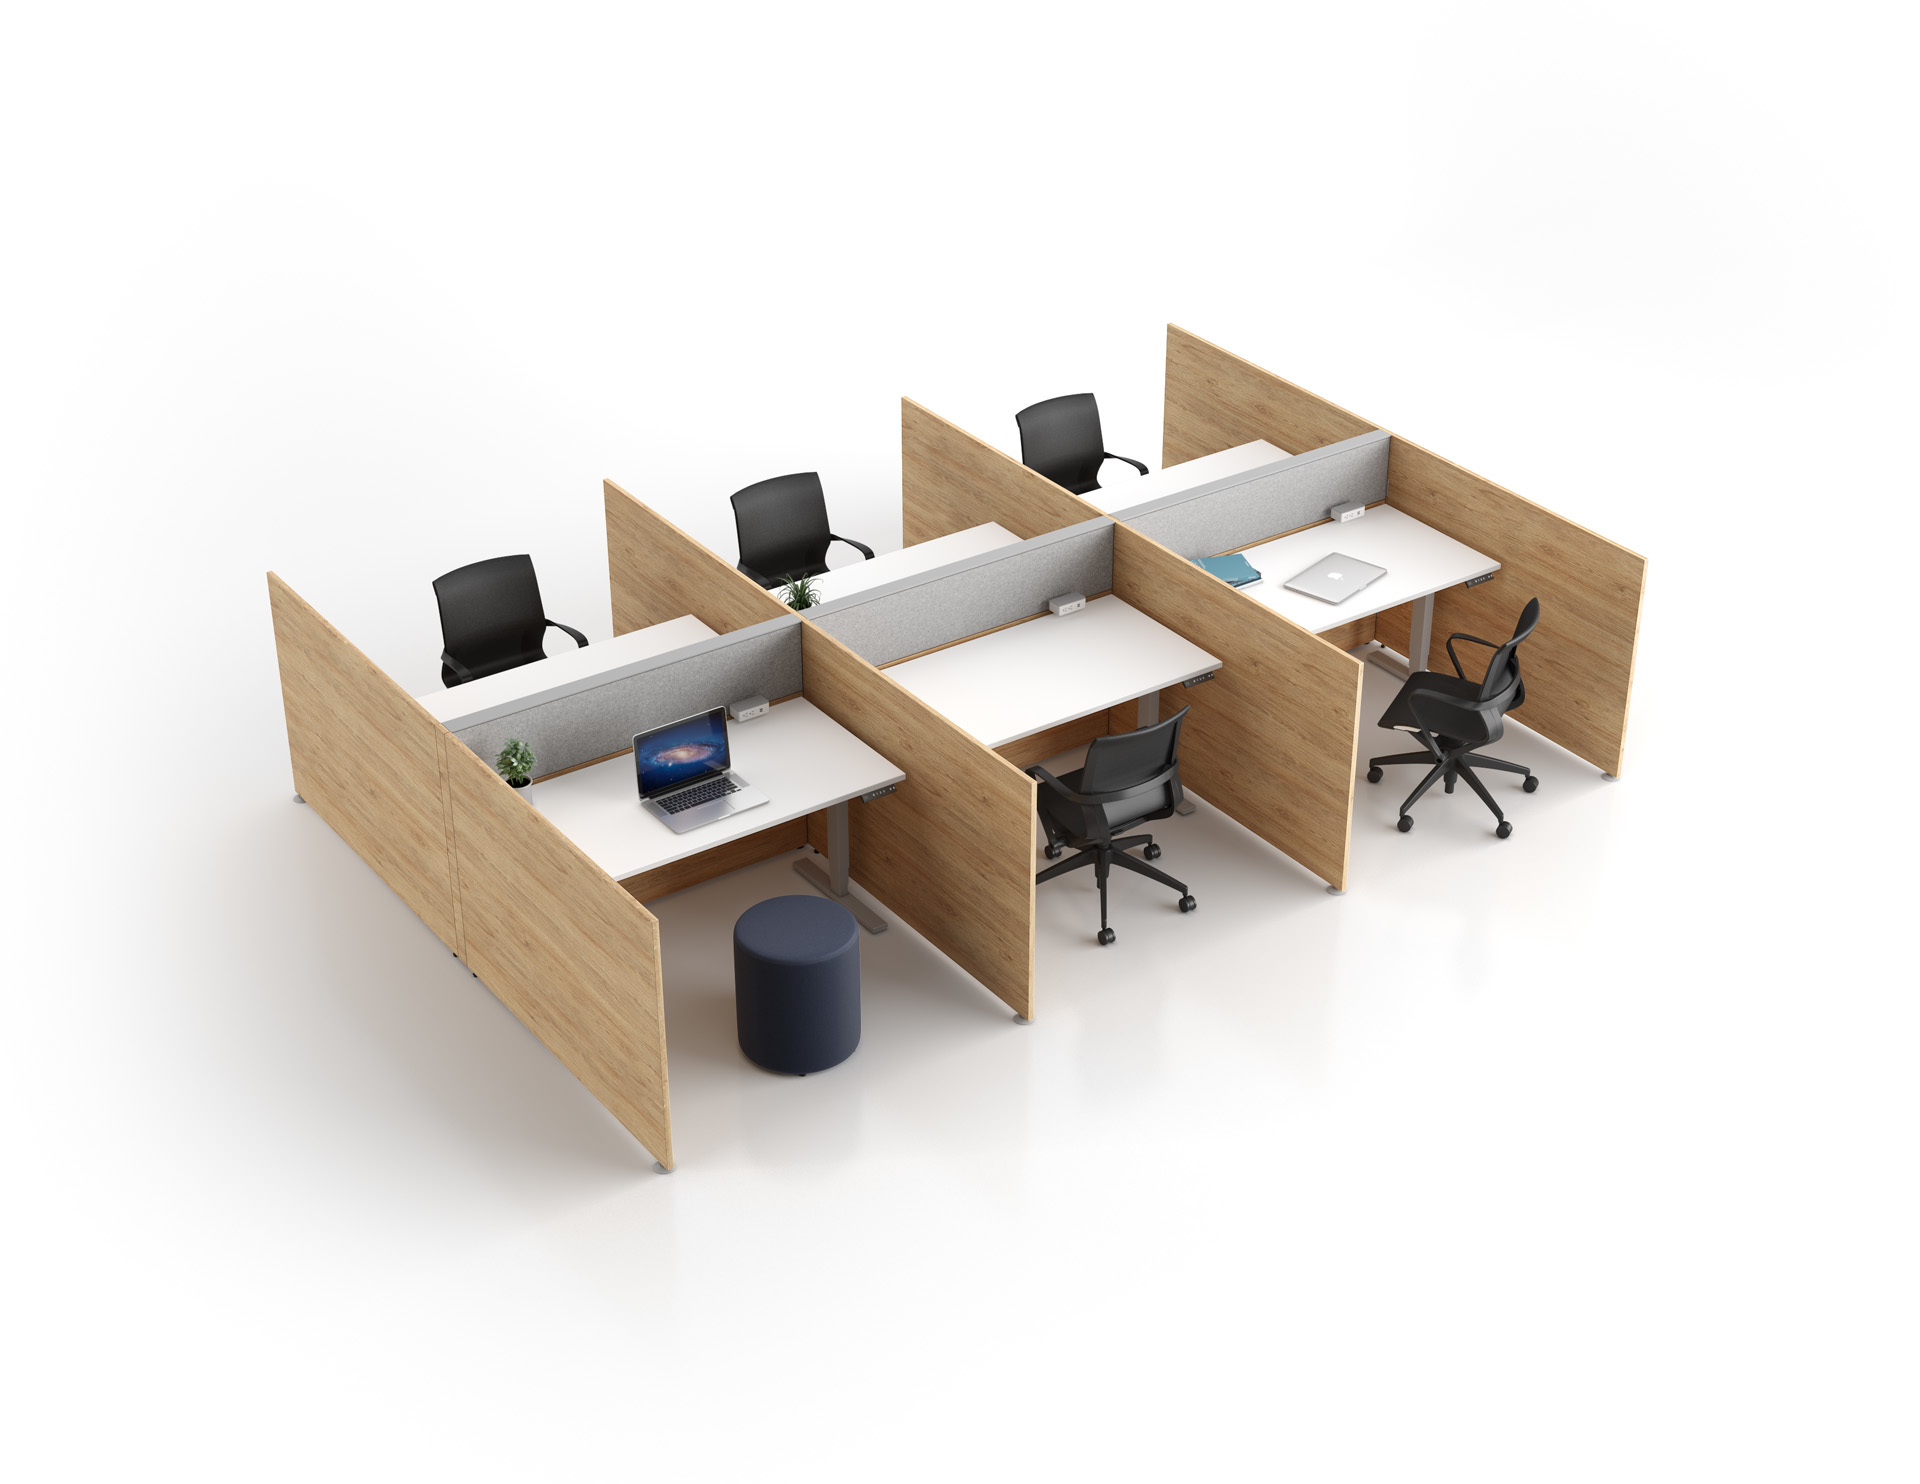 Axel Co Working Space Office Desk Sharing Space Industrie Gyva Office Public Space Open